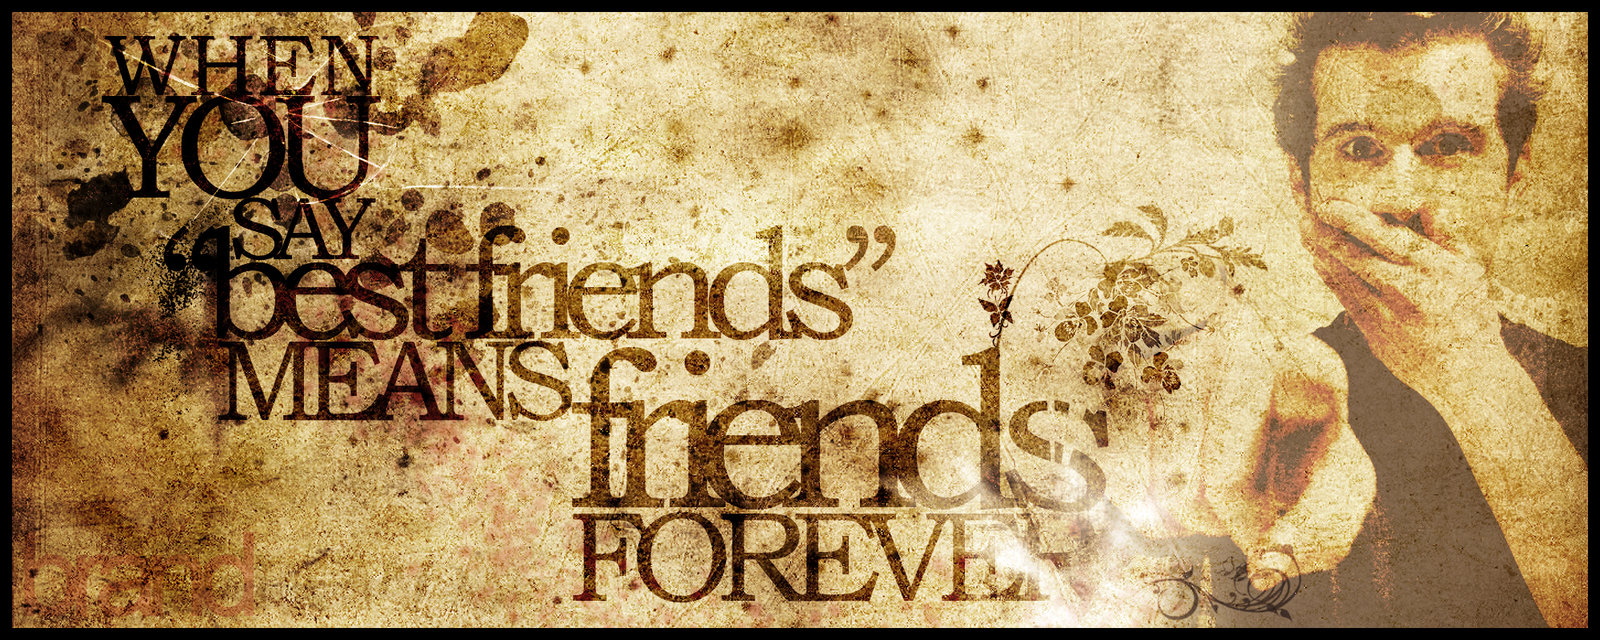 Best Friends Forever Wallpaper 70 Pictures: FRIENDSHIP DAY HD WALLPAPER 1